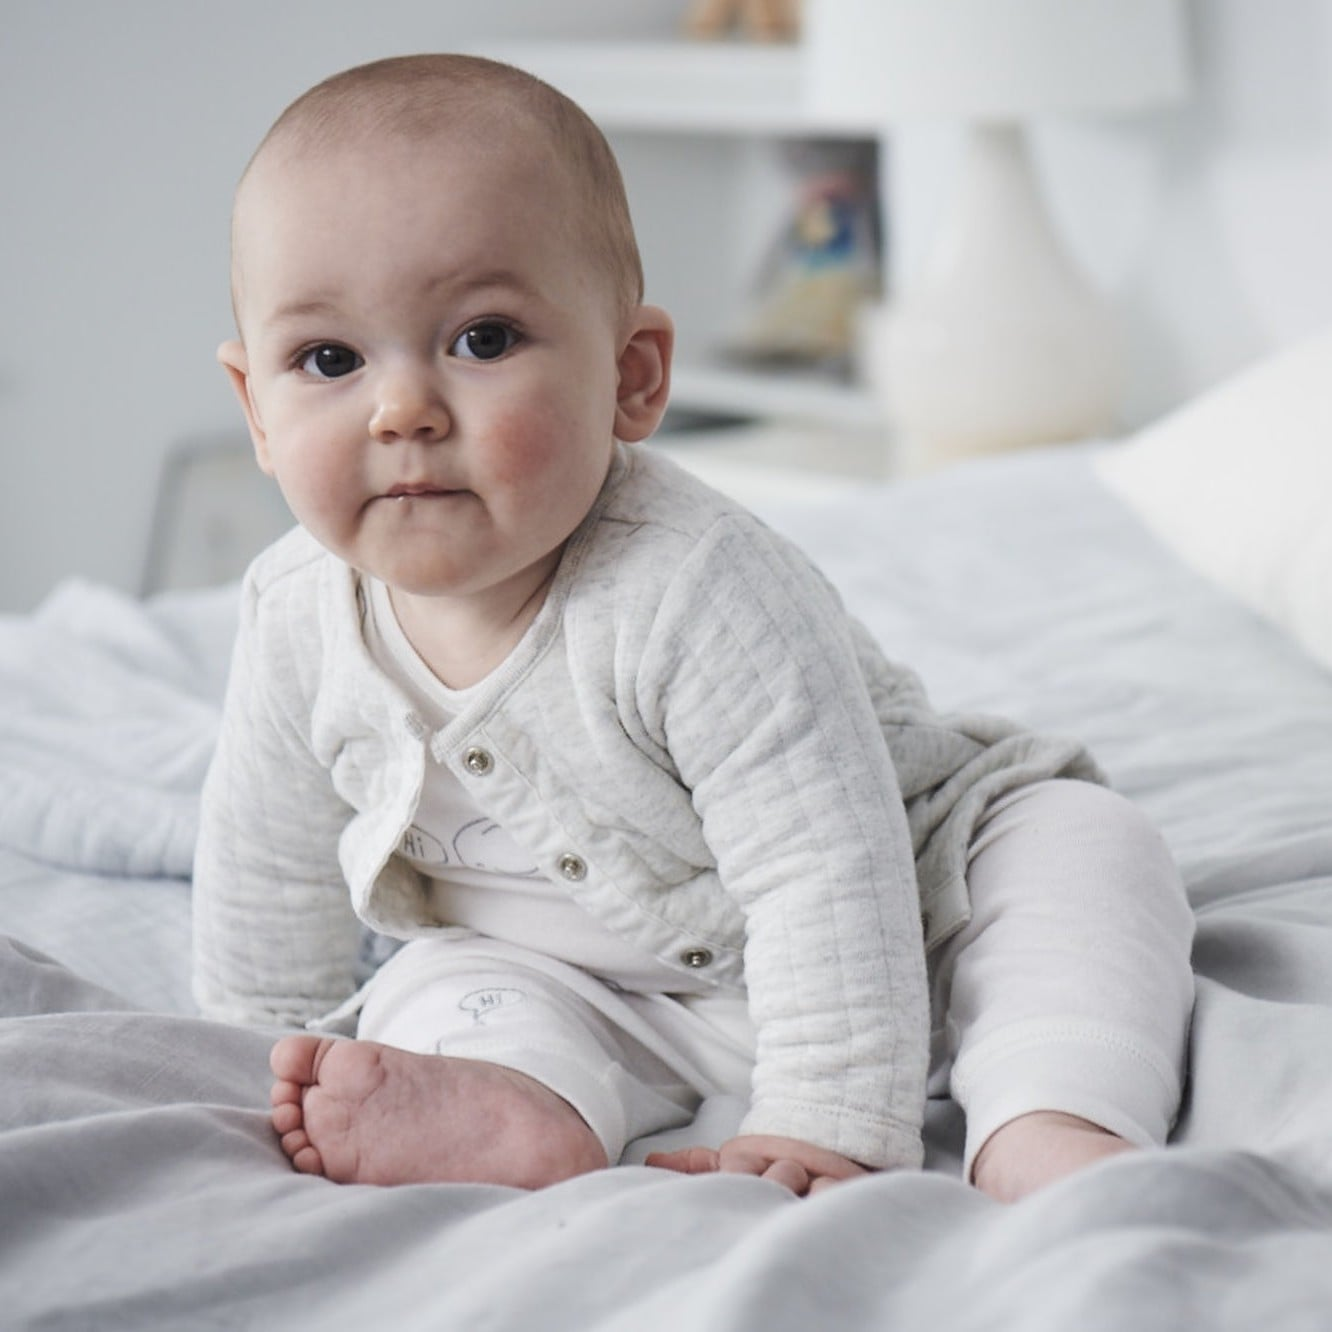 Preventing and Treating Flat Head Syndrome in Babies